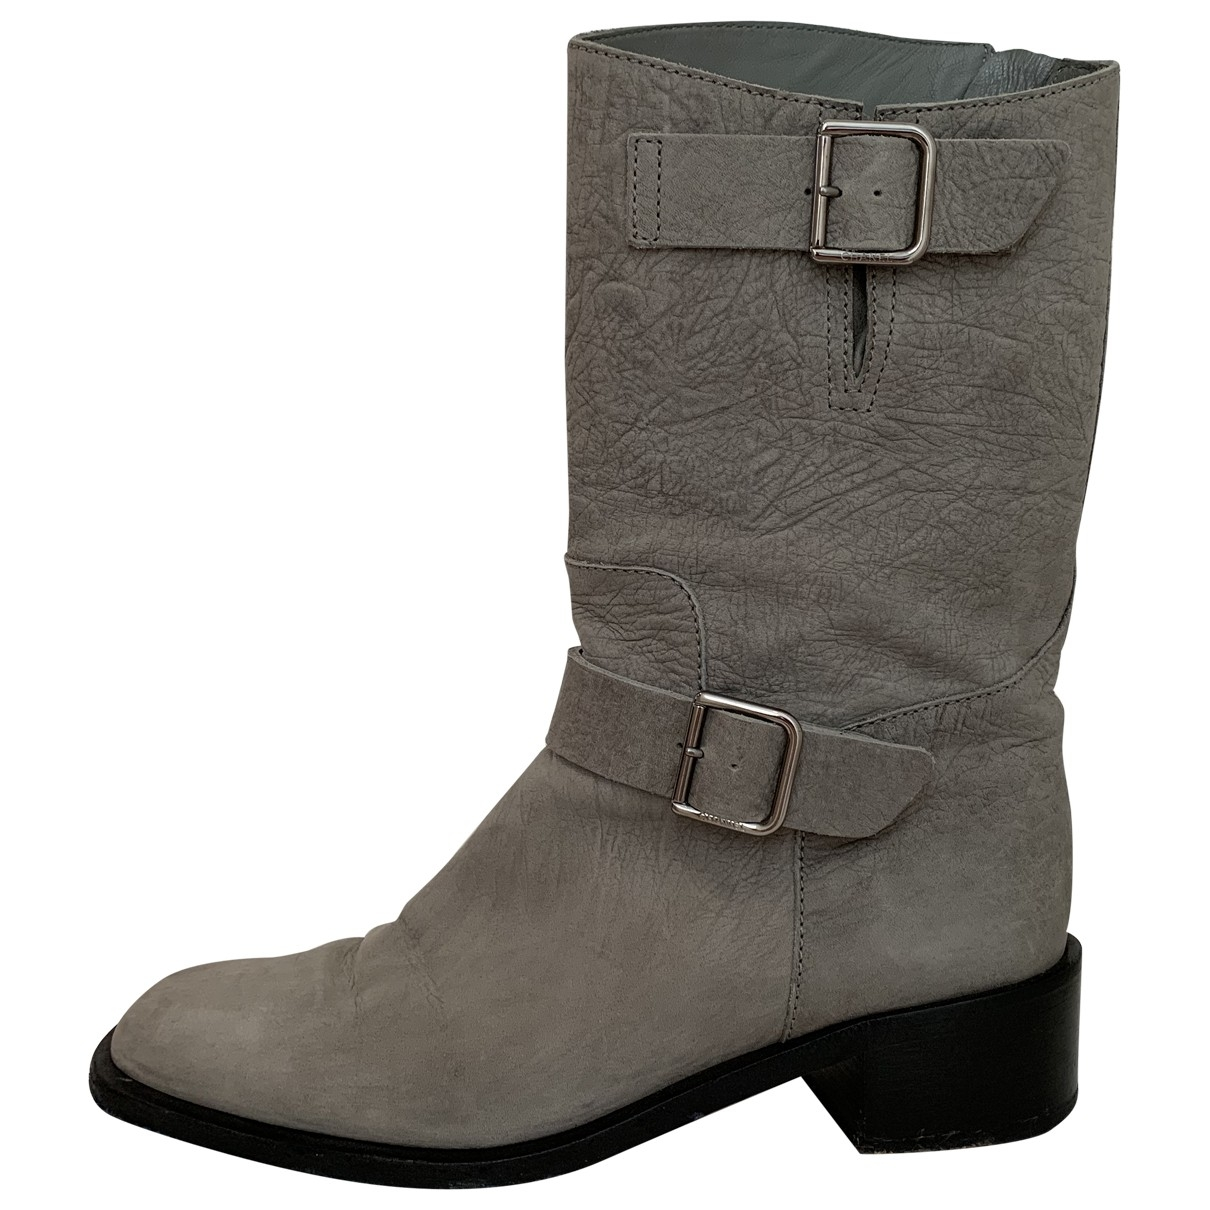 Chanel \N Grey Leather Boots for Women 39.5 EU